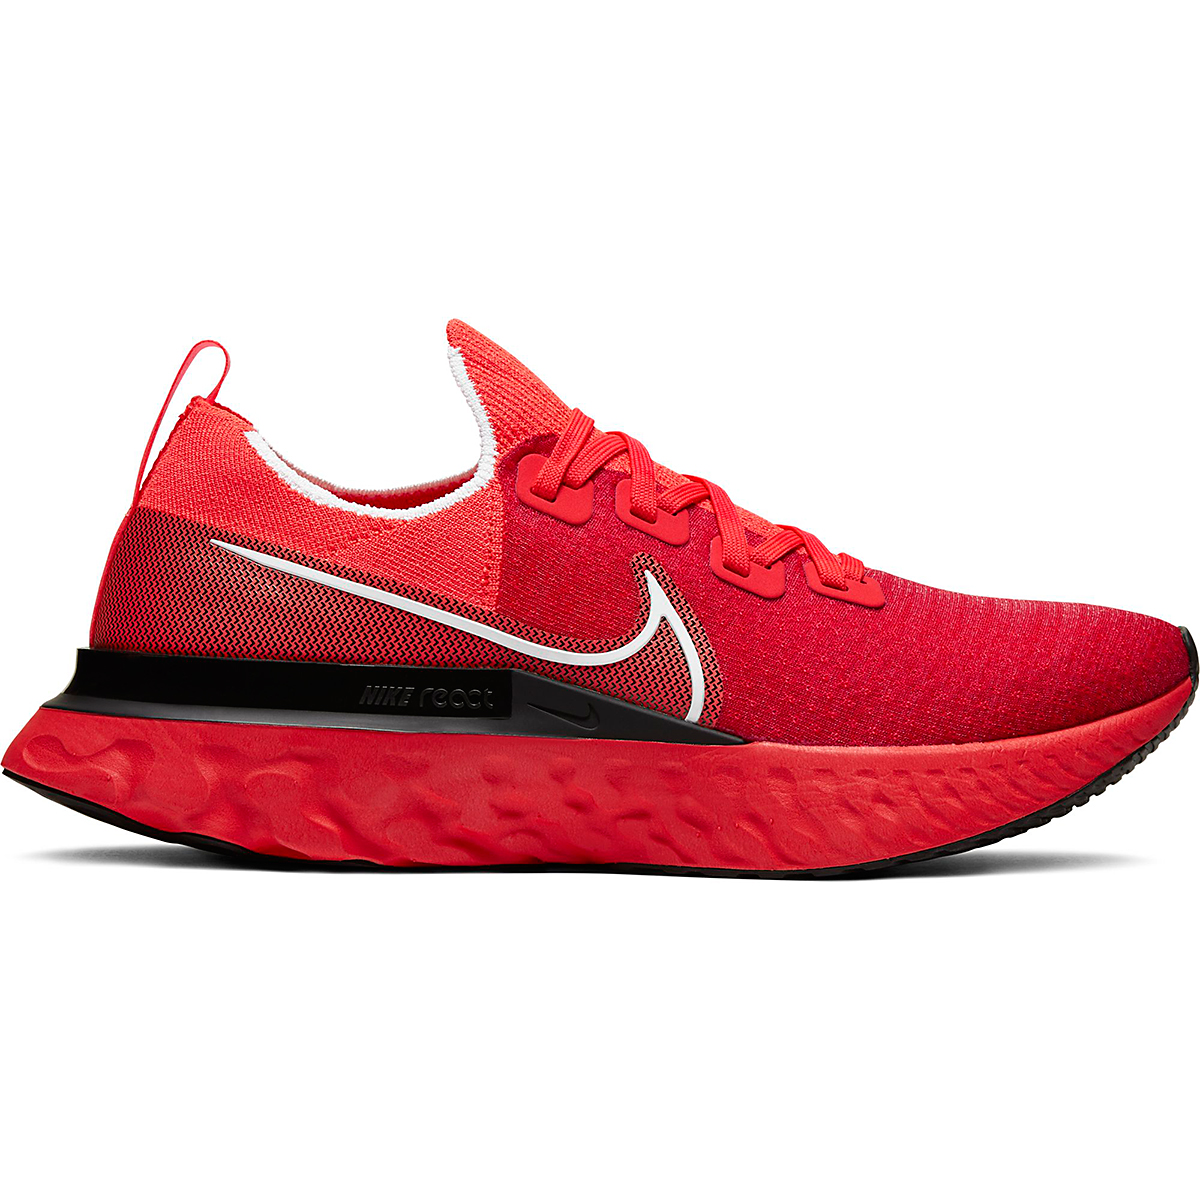 Men's Nike React Infinity Run Flyknit Running Shoe - Color: Bright Crimson - Size: 6 - Width: Regular, Bright Crimson, large, image 1